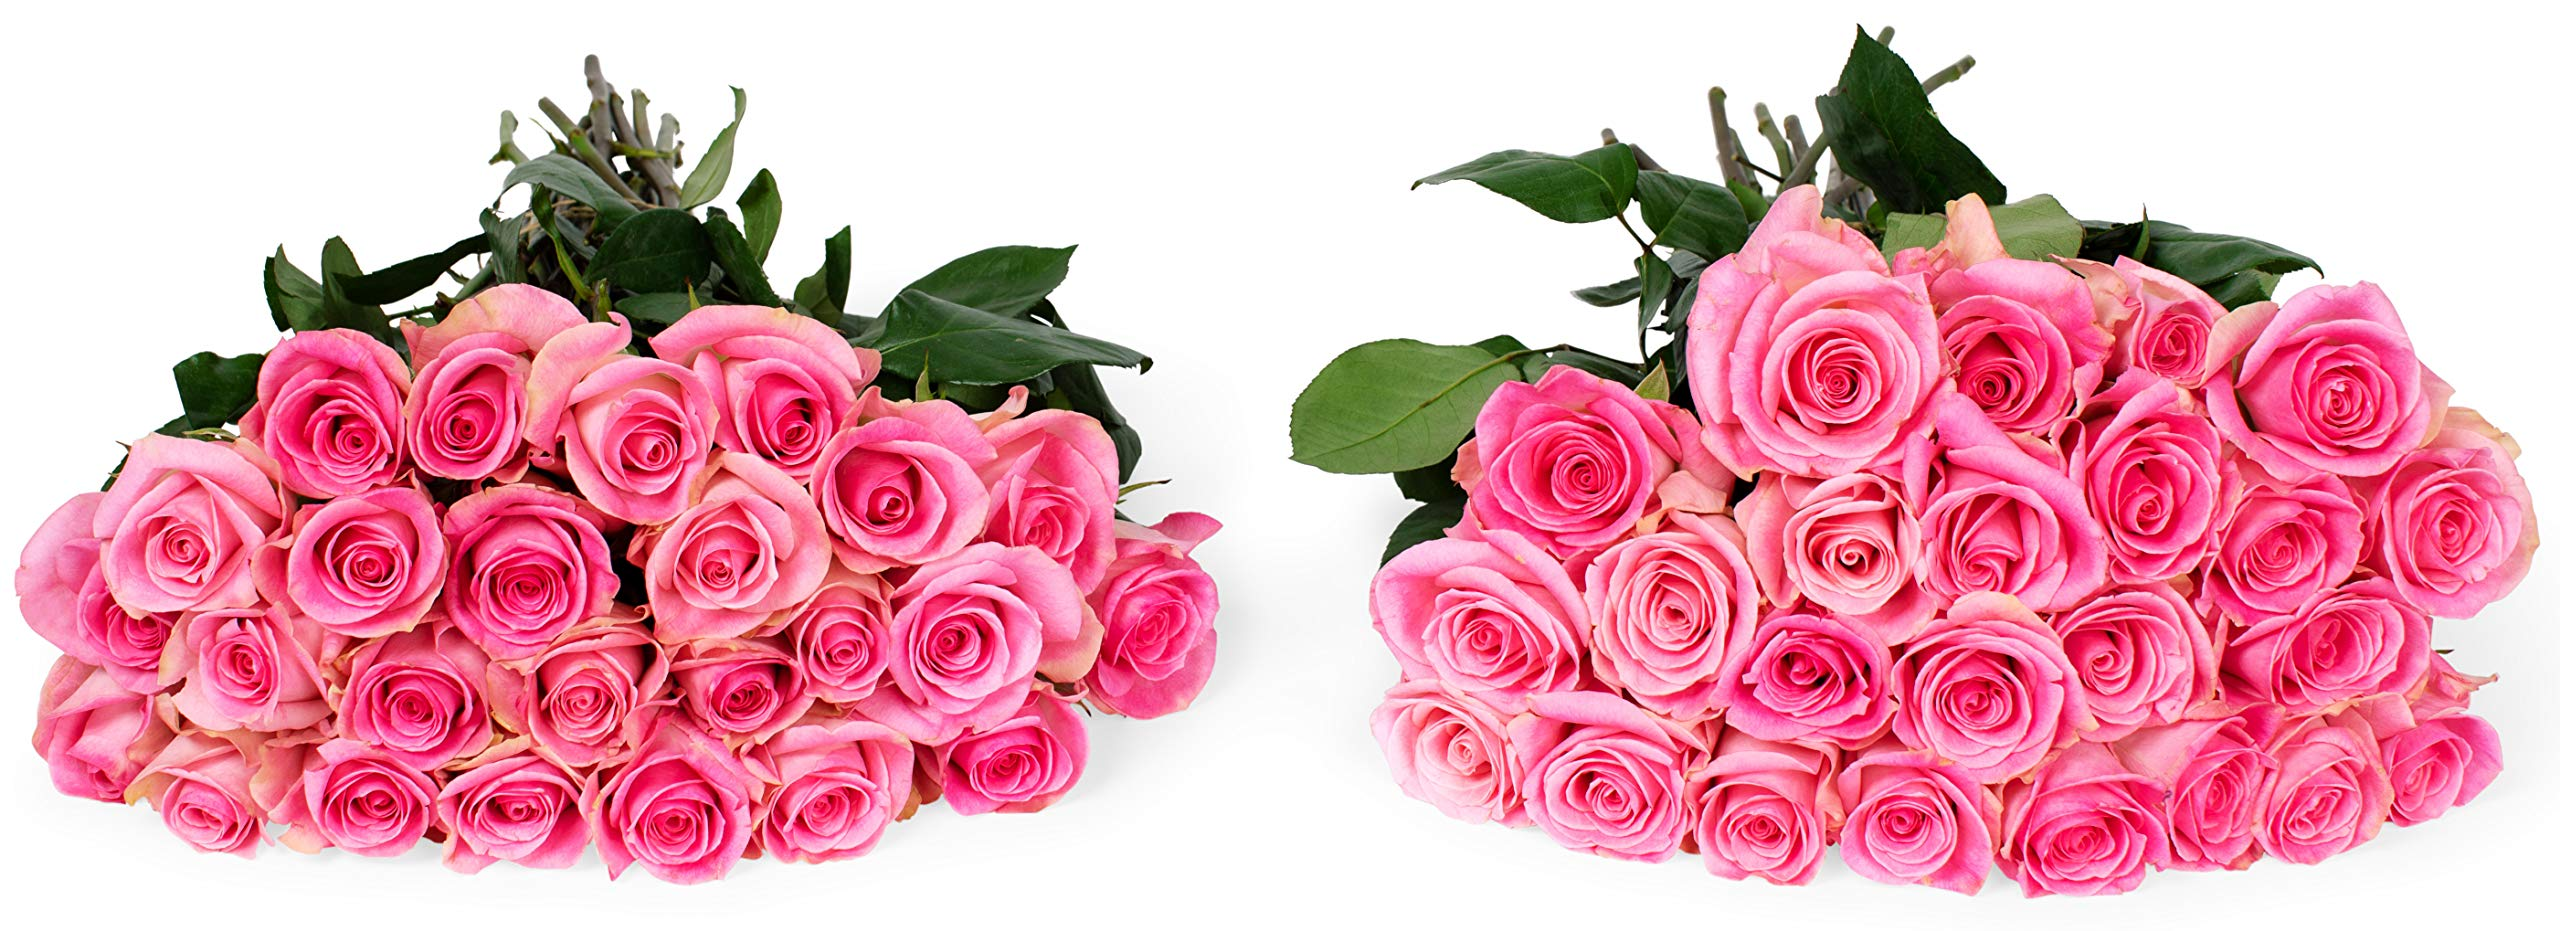 Benchmark Bouquets 50 Light Pink Roses Farm Direct (Fresh Cut Flowers)